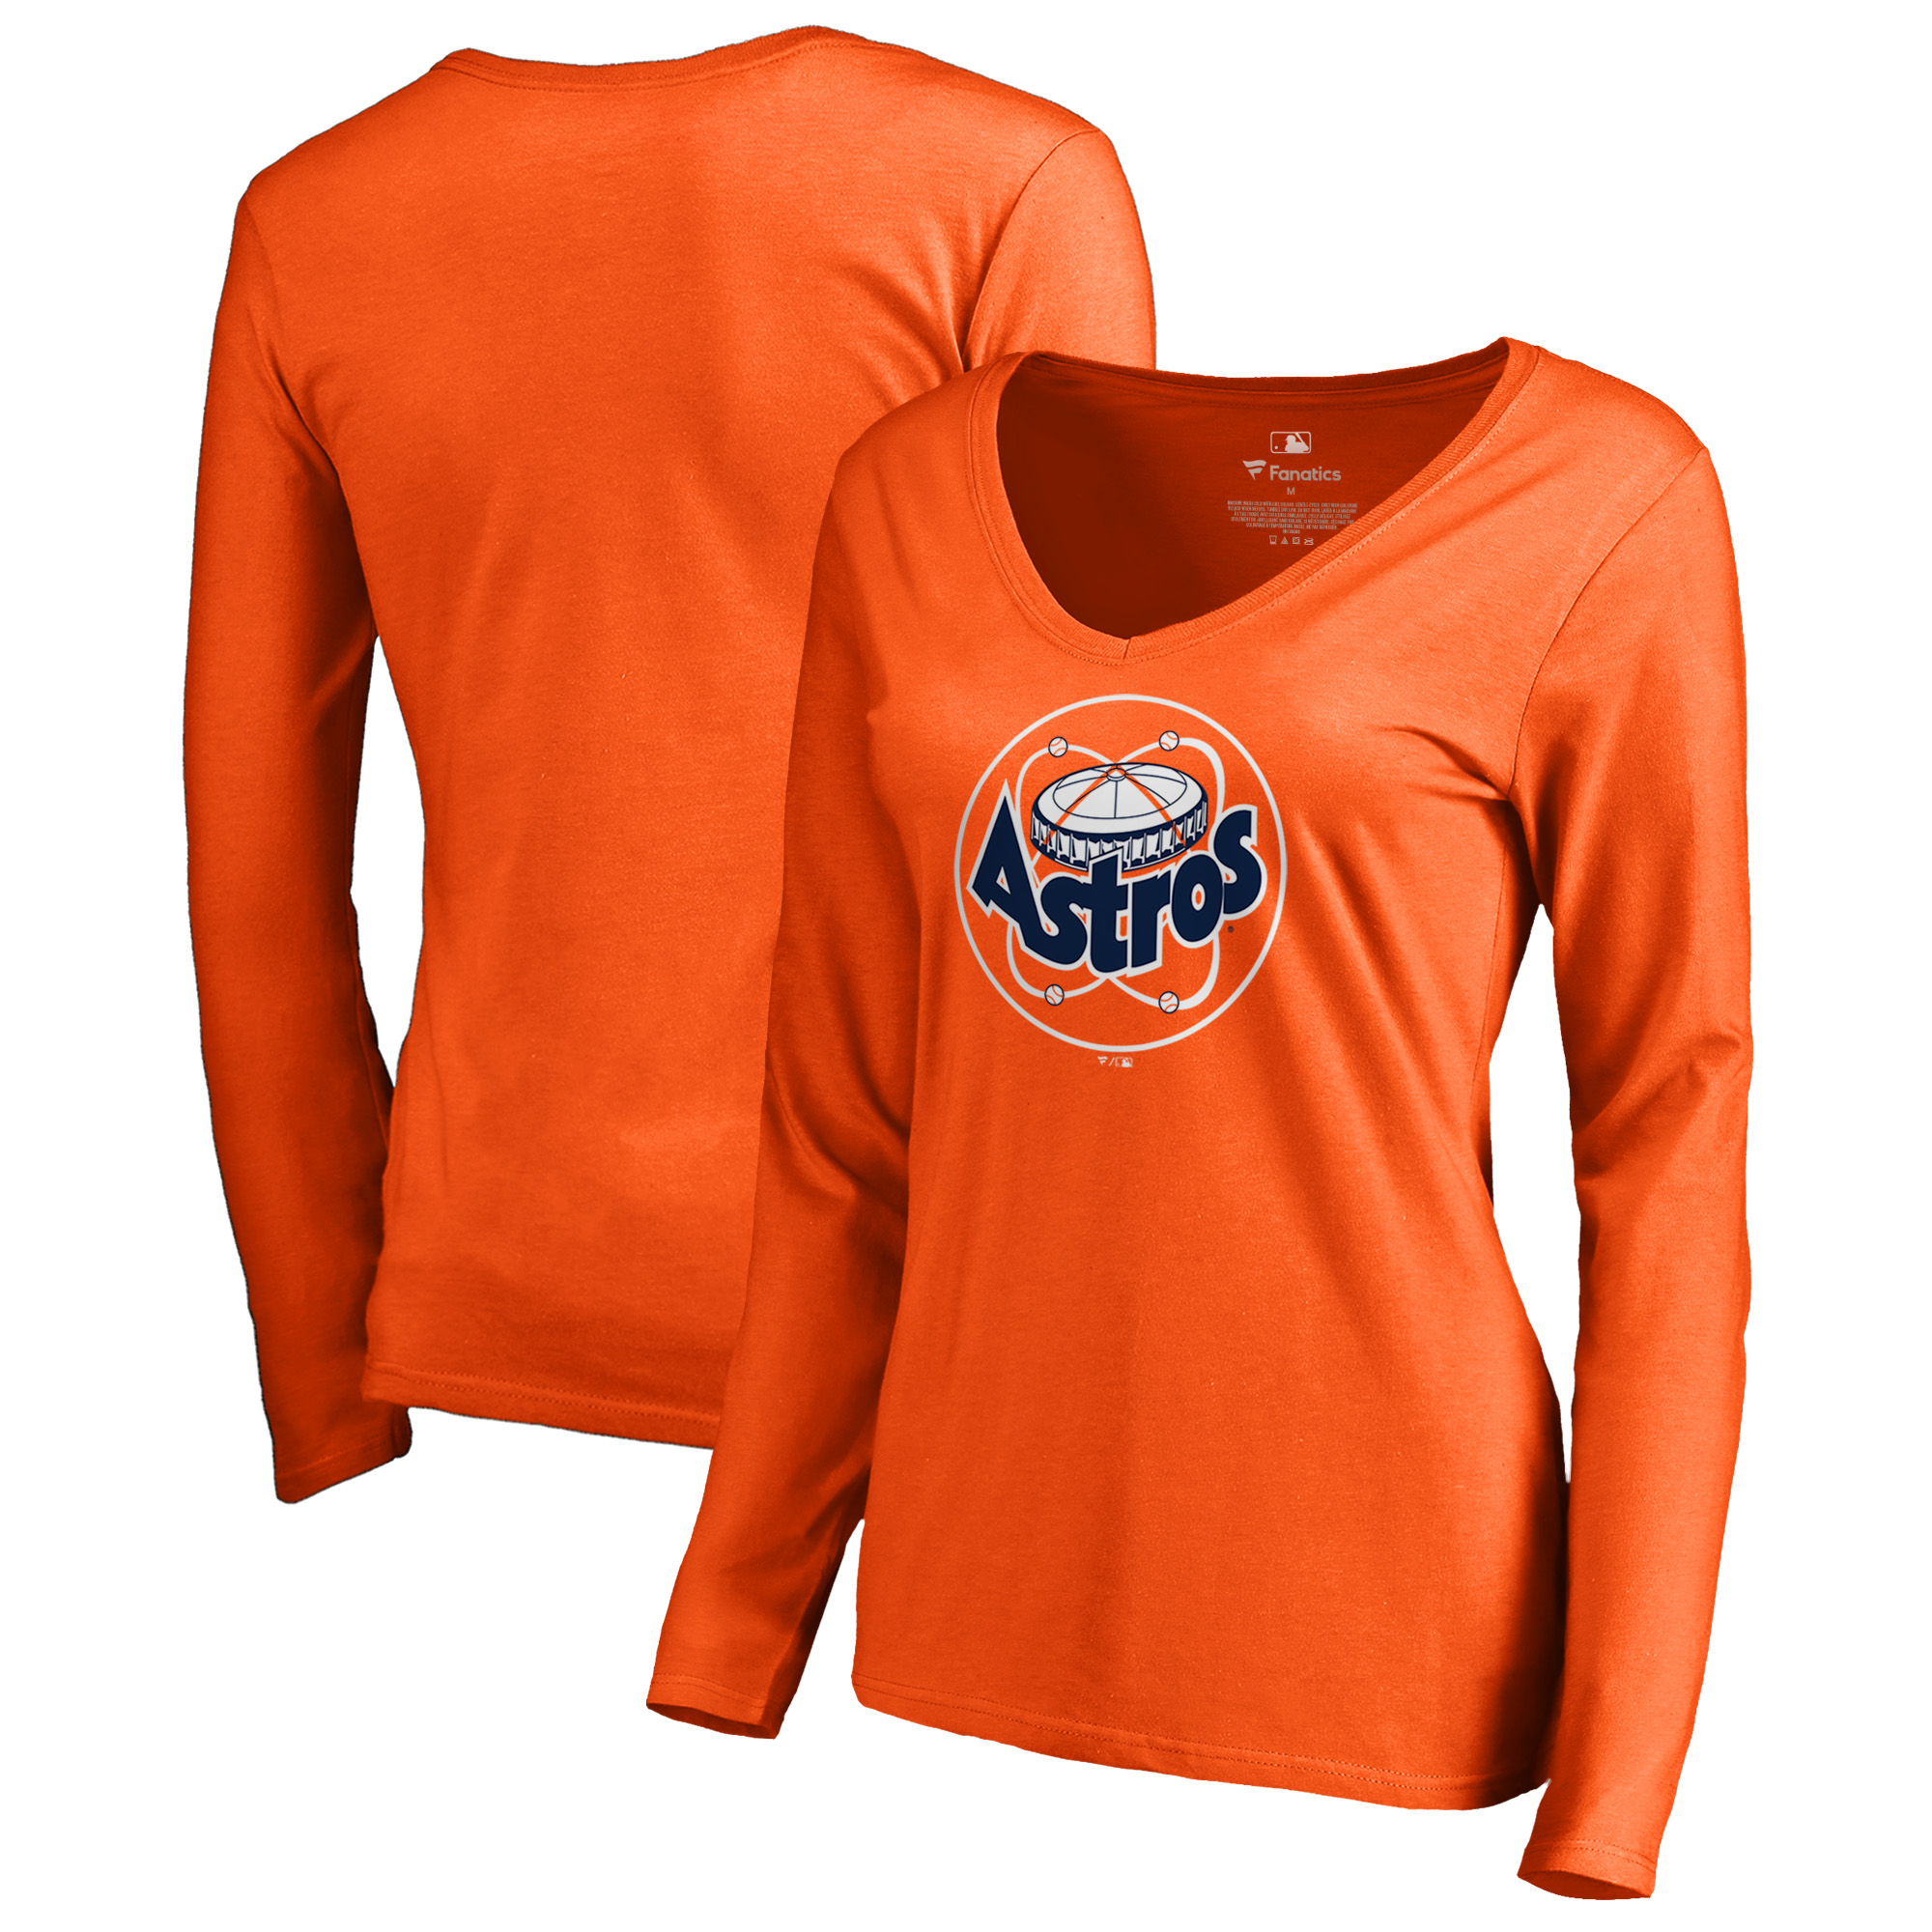 Fanatics Branded Women's Cooperstown Collection Huntington Long Sleeve V-Neck T-Shirt - Orange